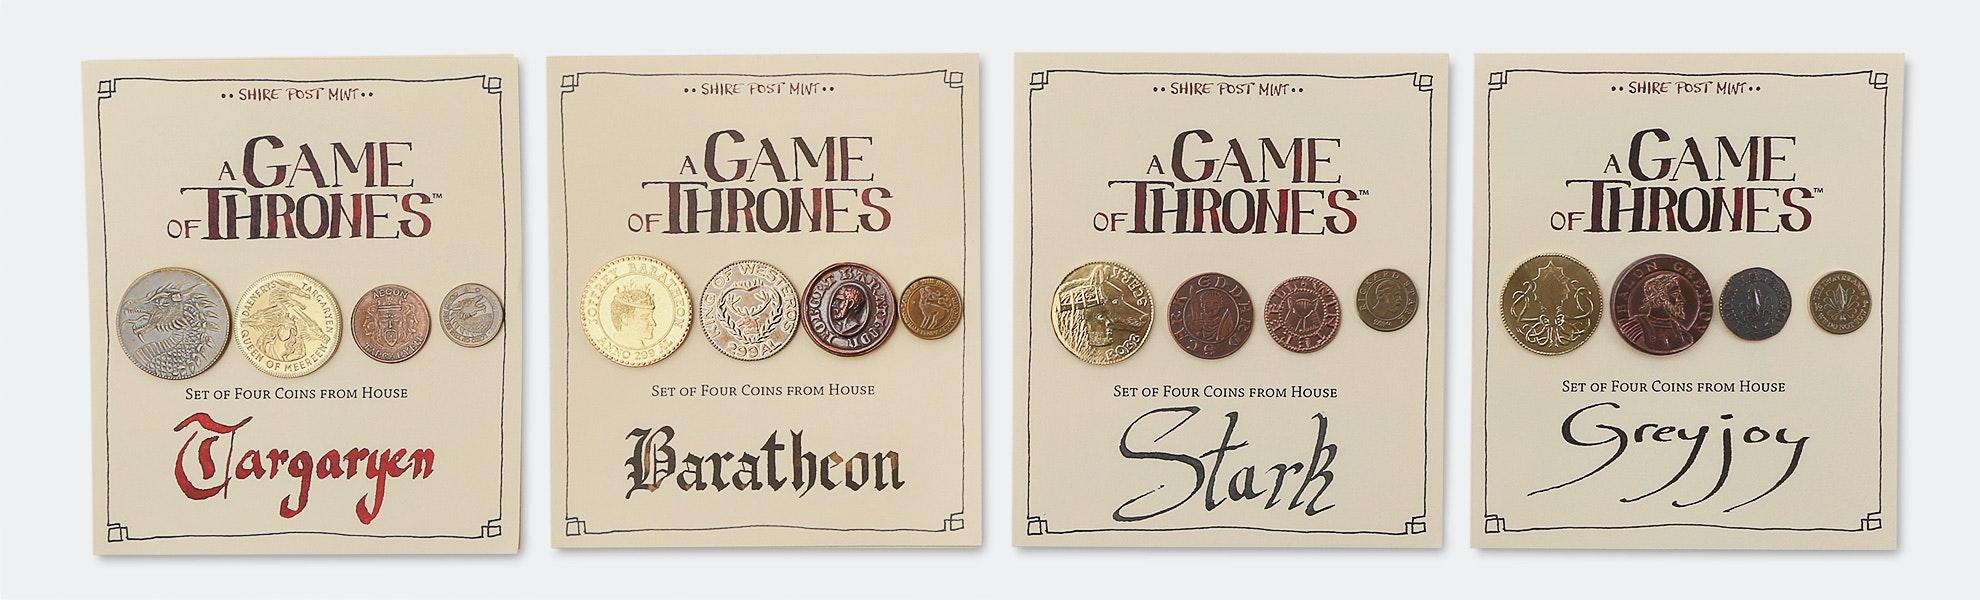 Game of Thrones Collectible Coin Sets